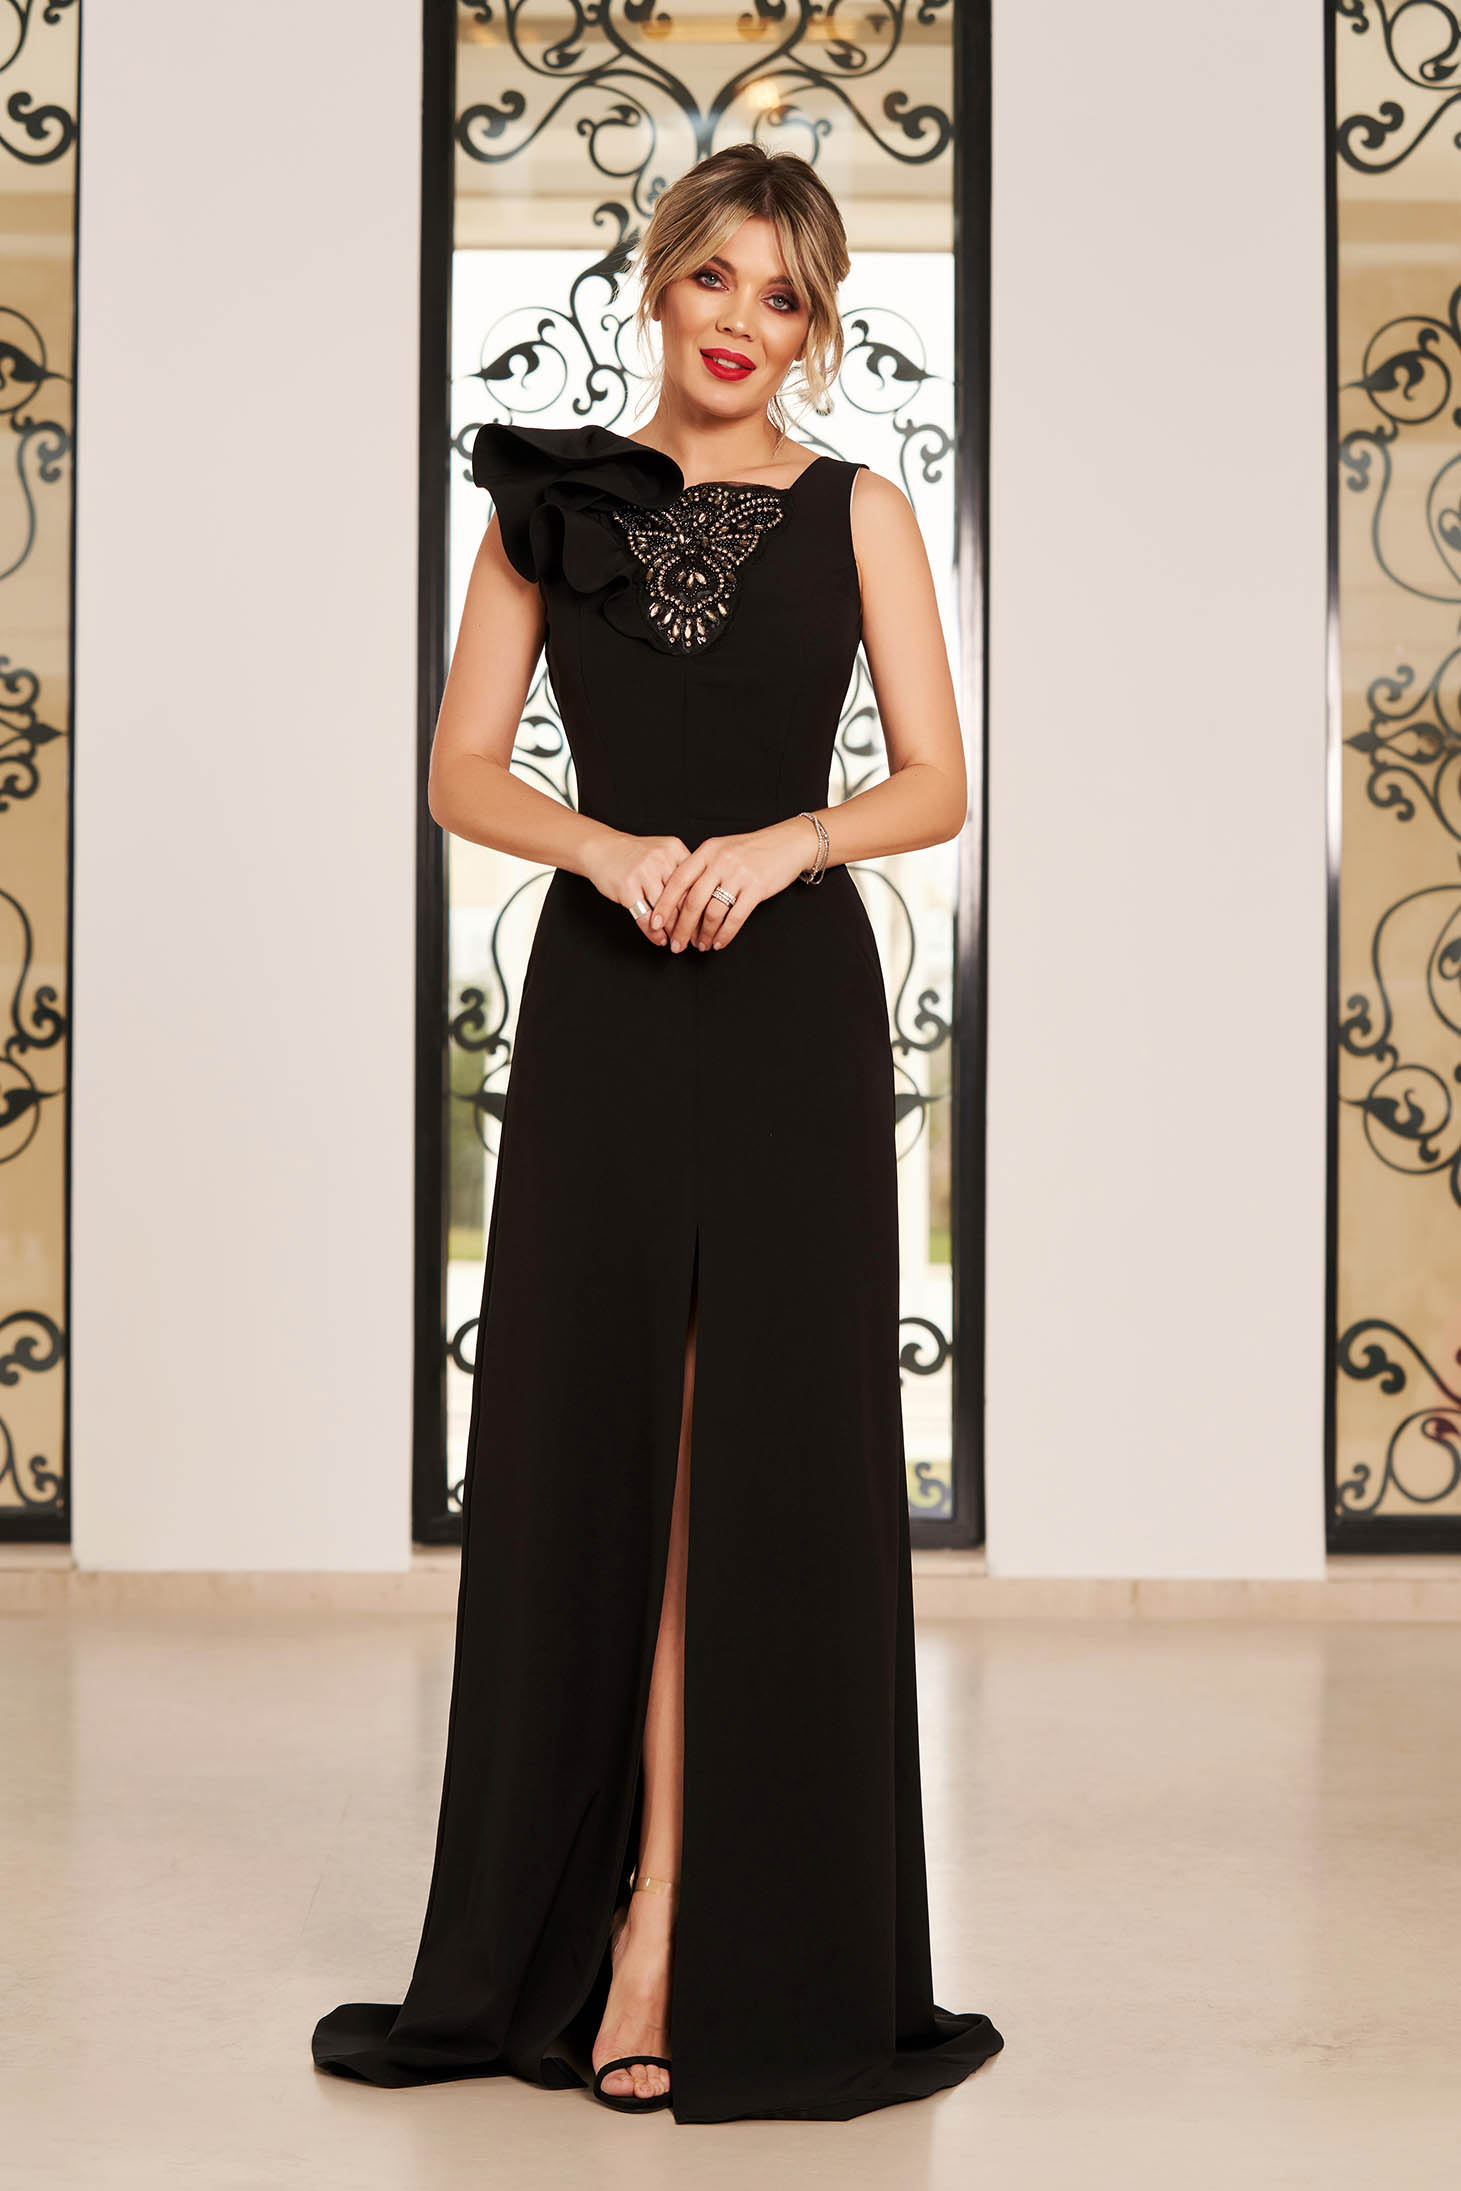 StarShinerS black luxurious long cloth dress with strass and ruffled sleeves